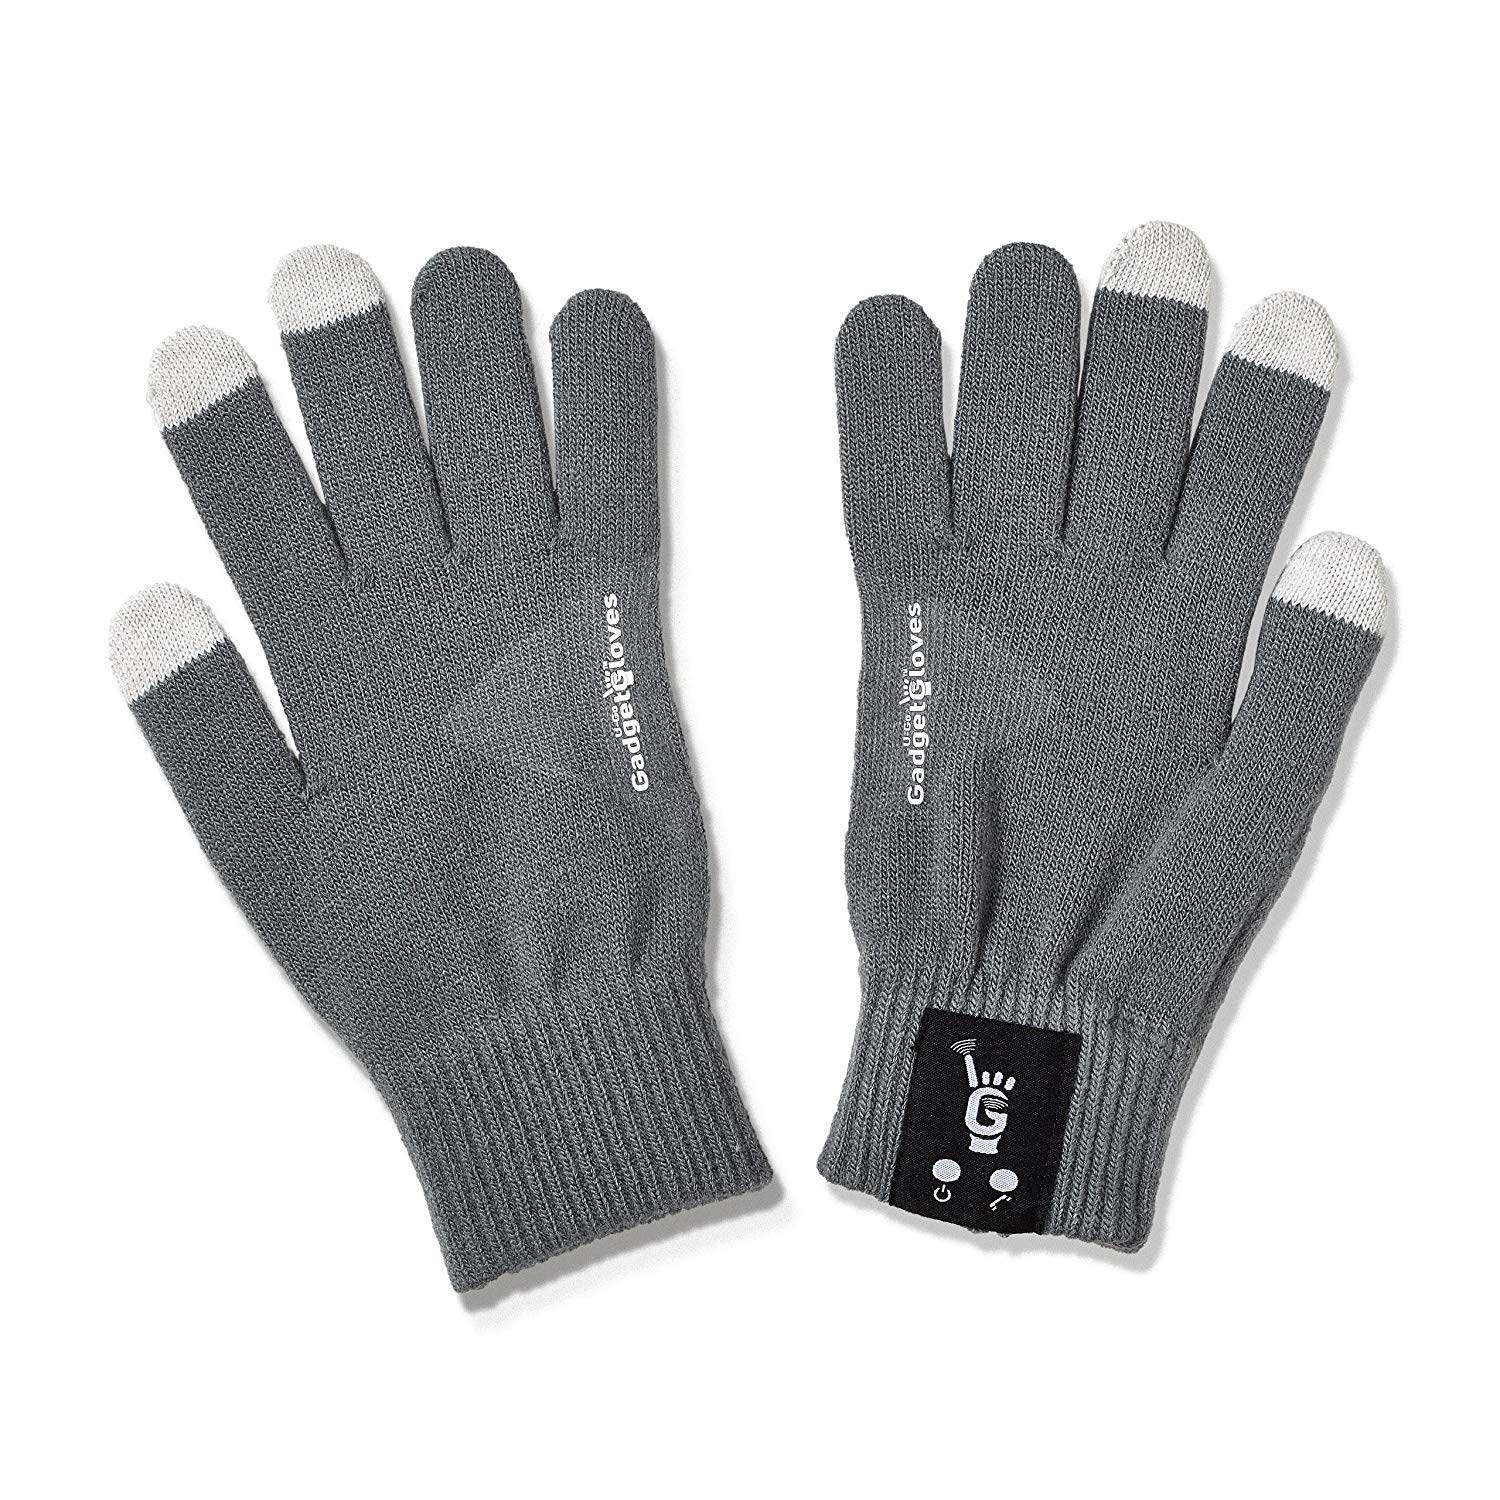 Bluetooth Mic and Speaker Gloves 3